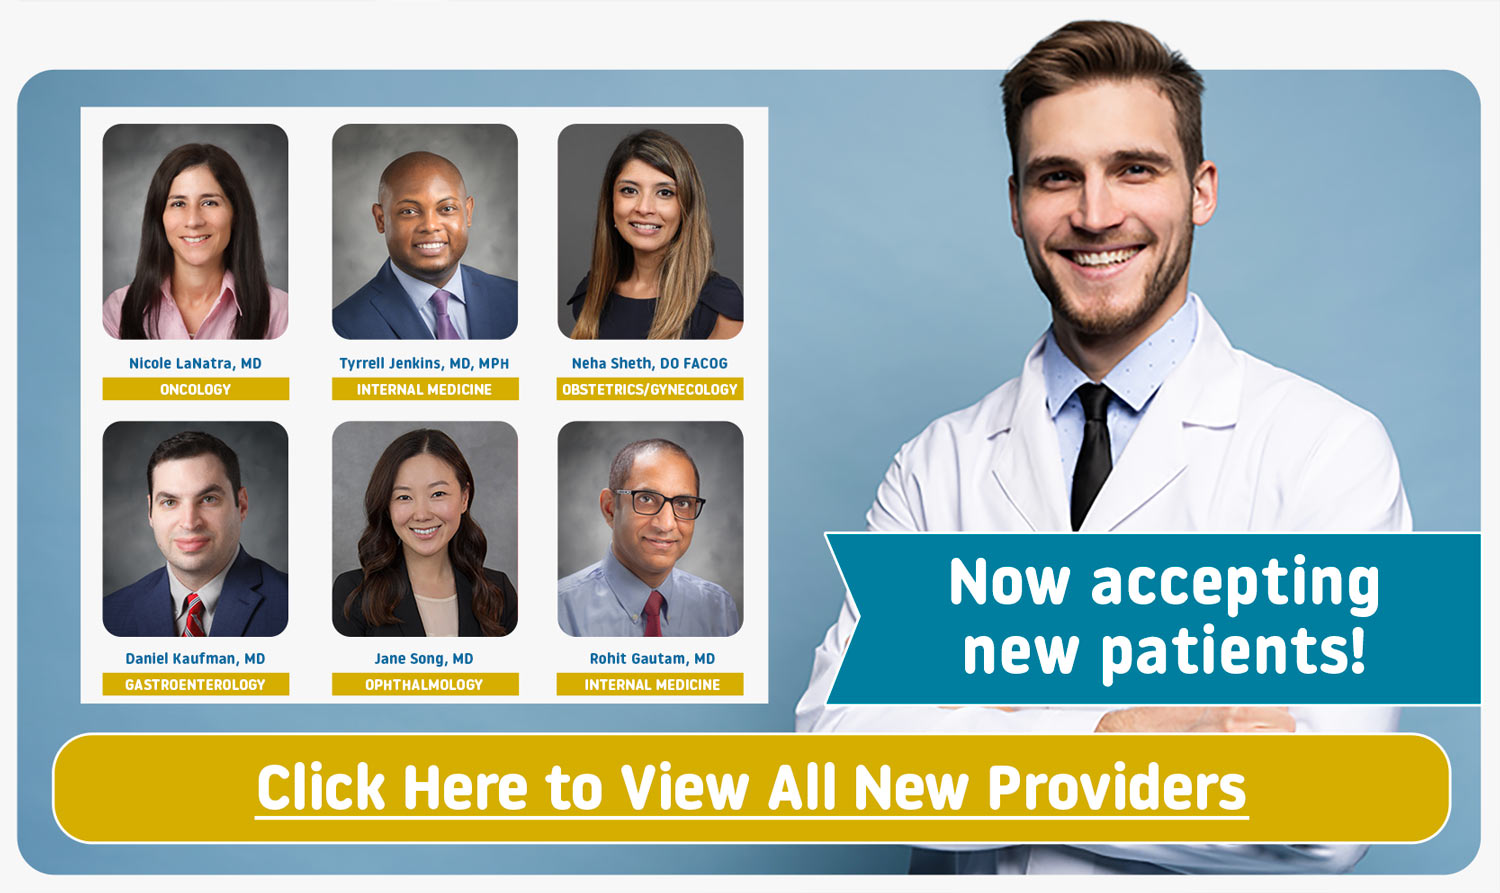 Meet Our New Providers - Accepting New Patients